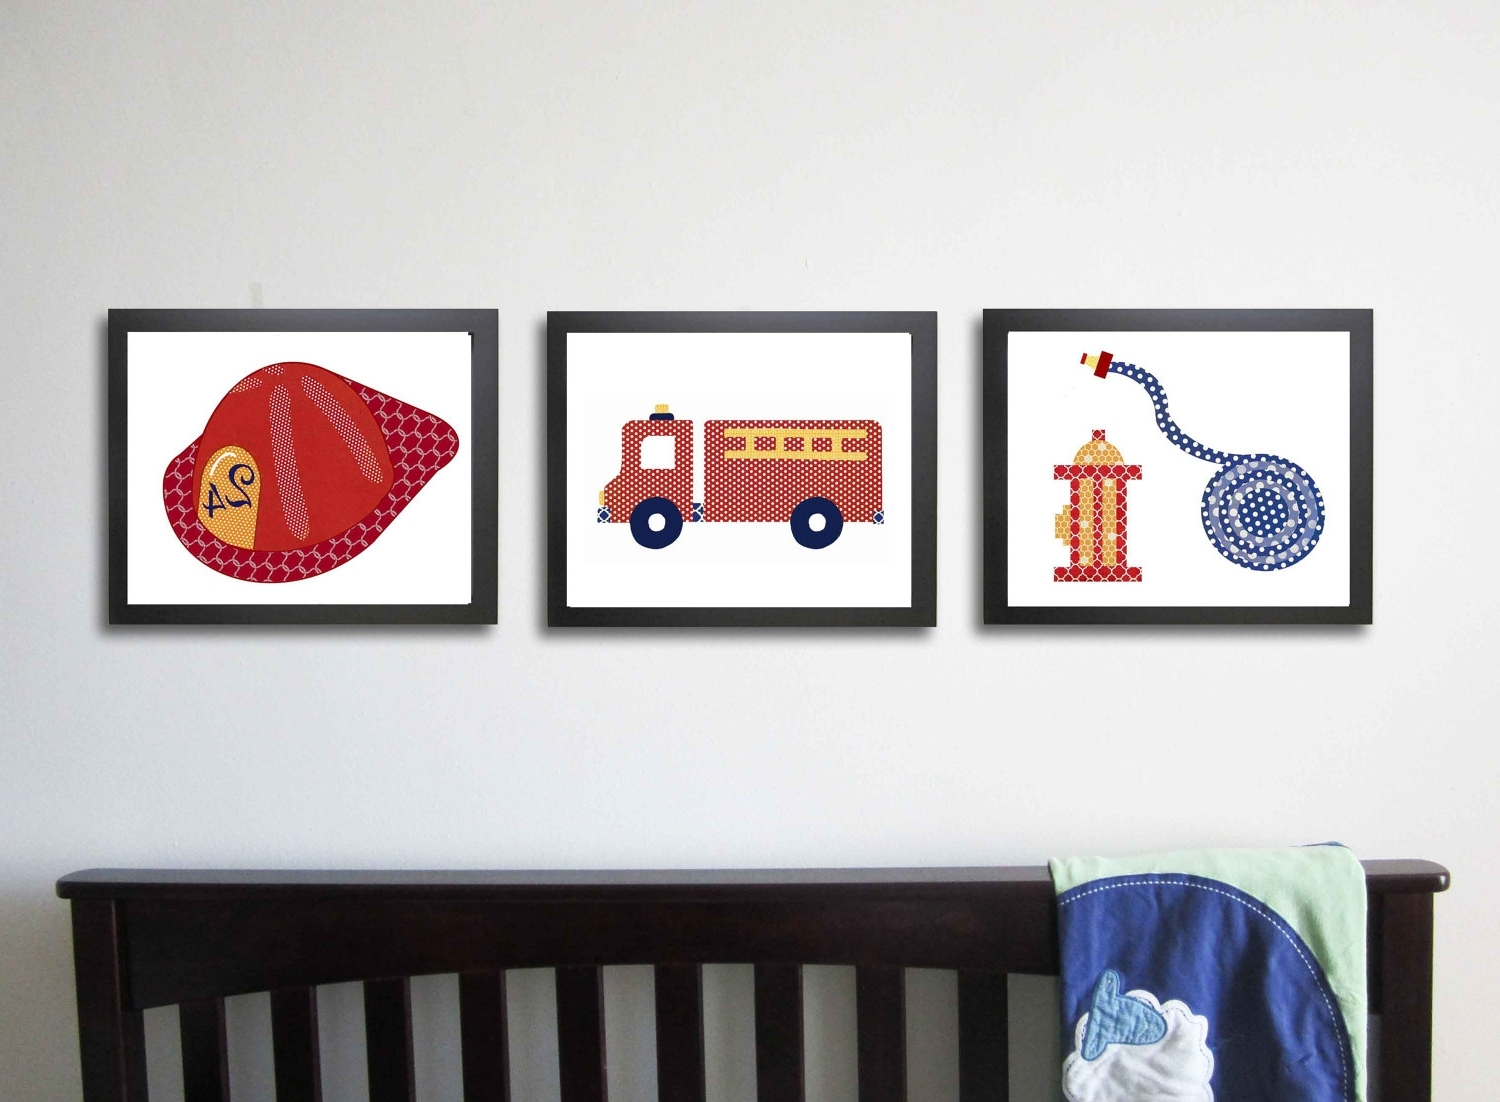 Best And Newest Boys Bedroom: Astounding Picture Of Red Kid Fire Truck Bedroom With Fire Truck Wall Art (View 5 of 15)